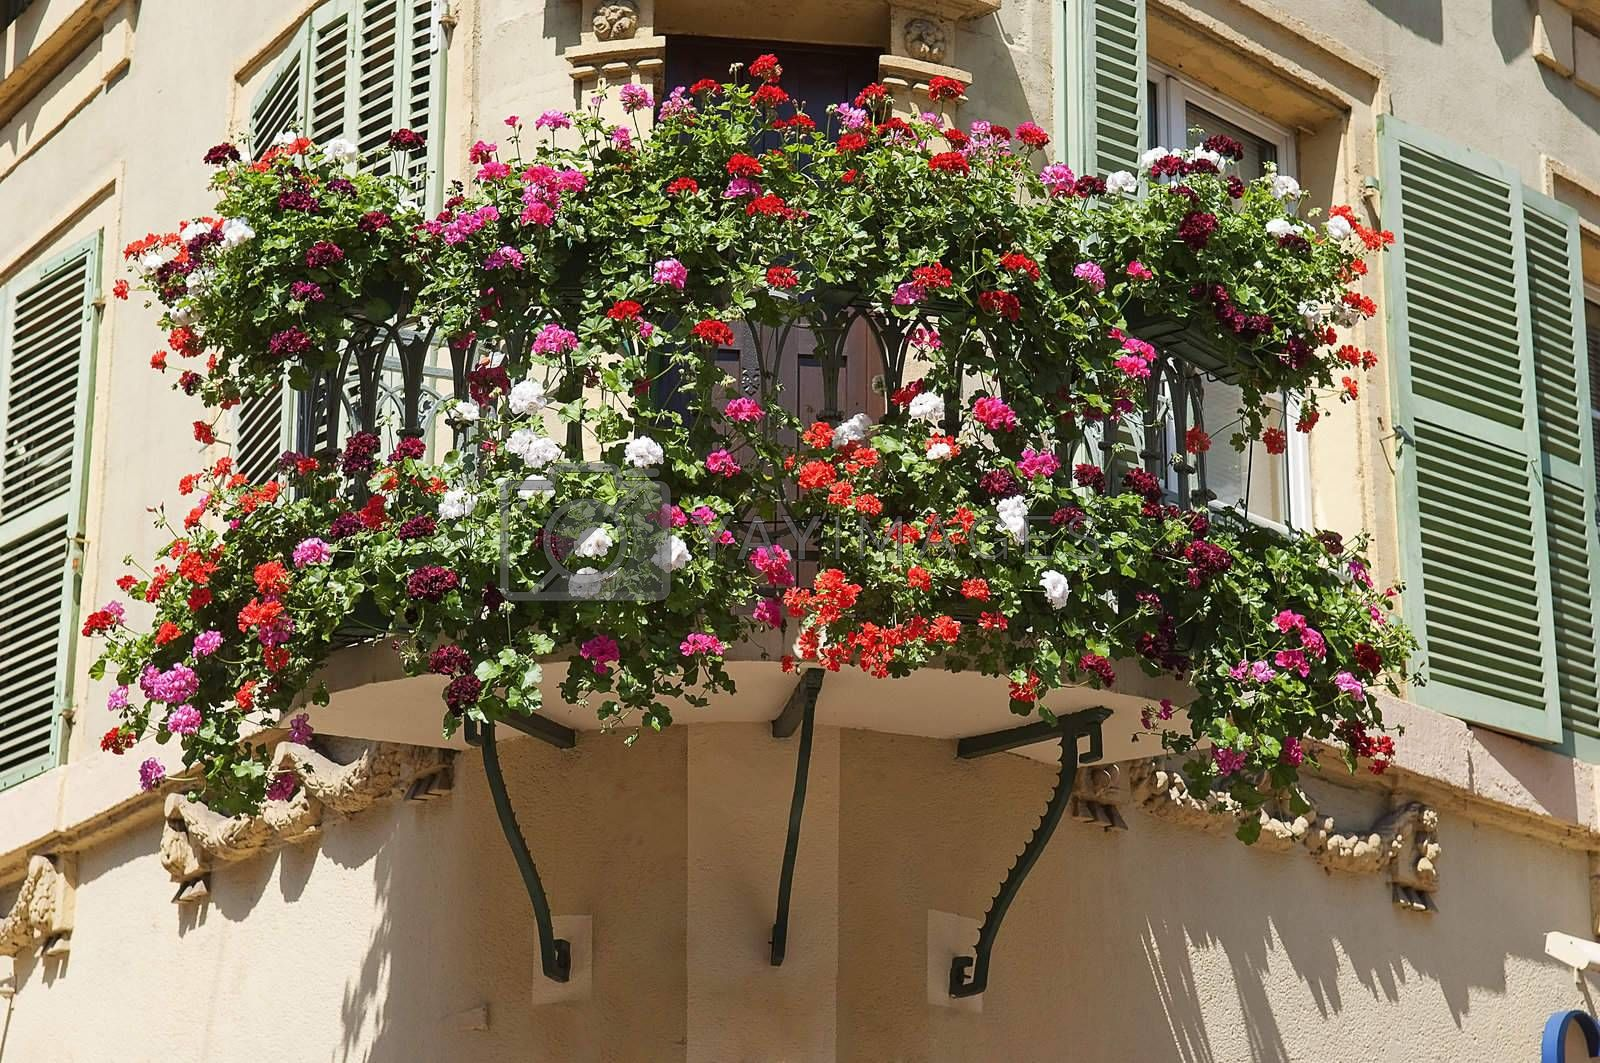 Flowers in the city of Colmar France